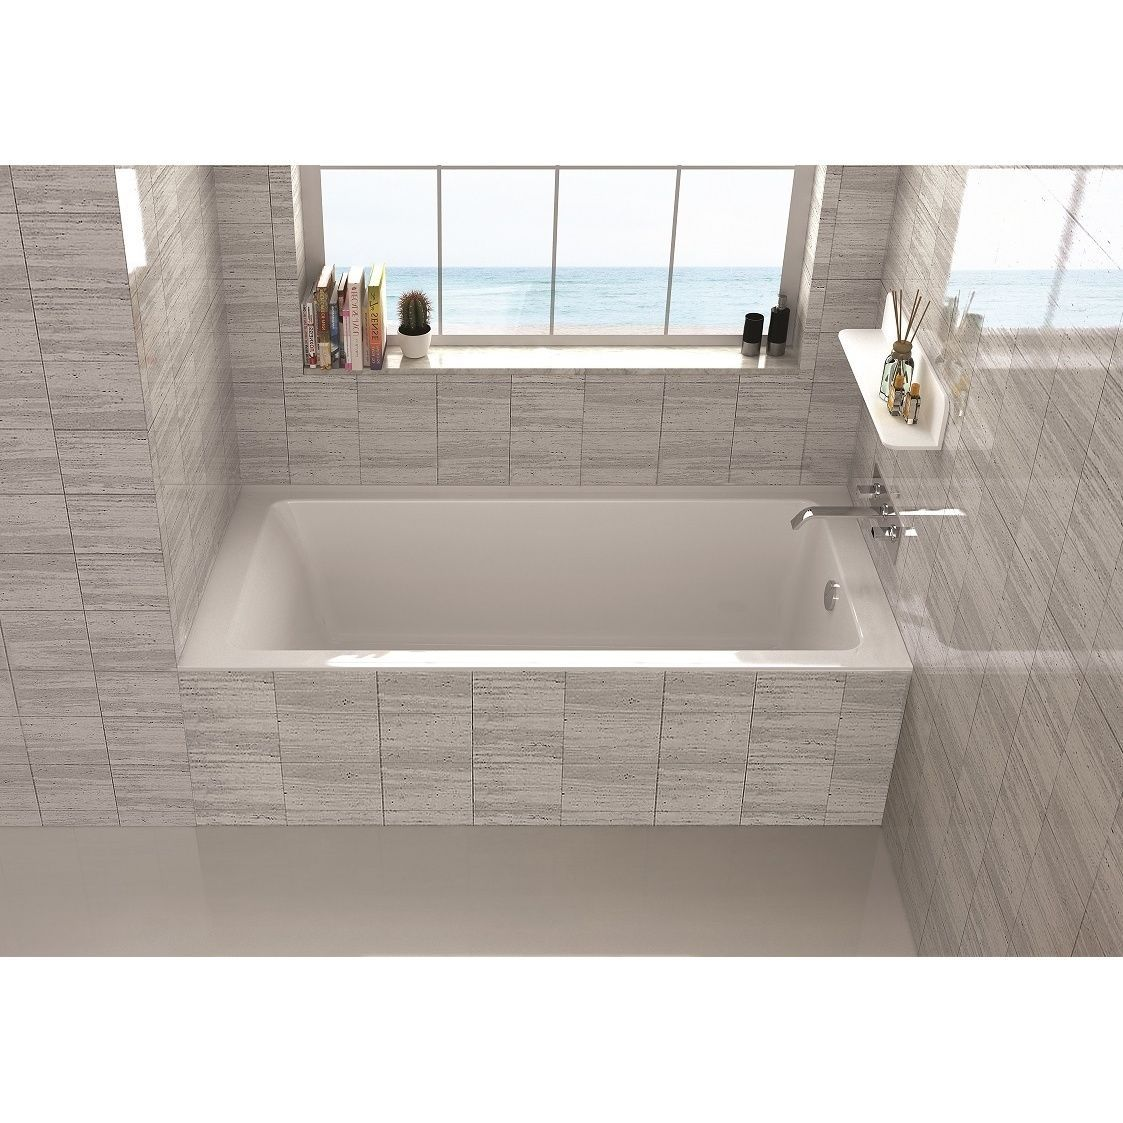 Lose Yourself In The Tranquility Of This Fine Fixtures Bathtub. Its Alcove  Design With Spacious Interior Makes It A True Pleasure To Soak In.